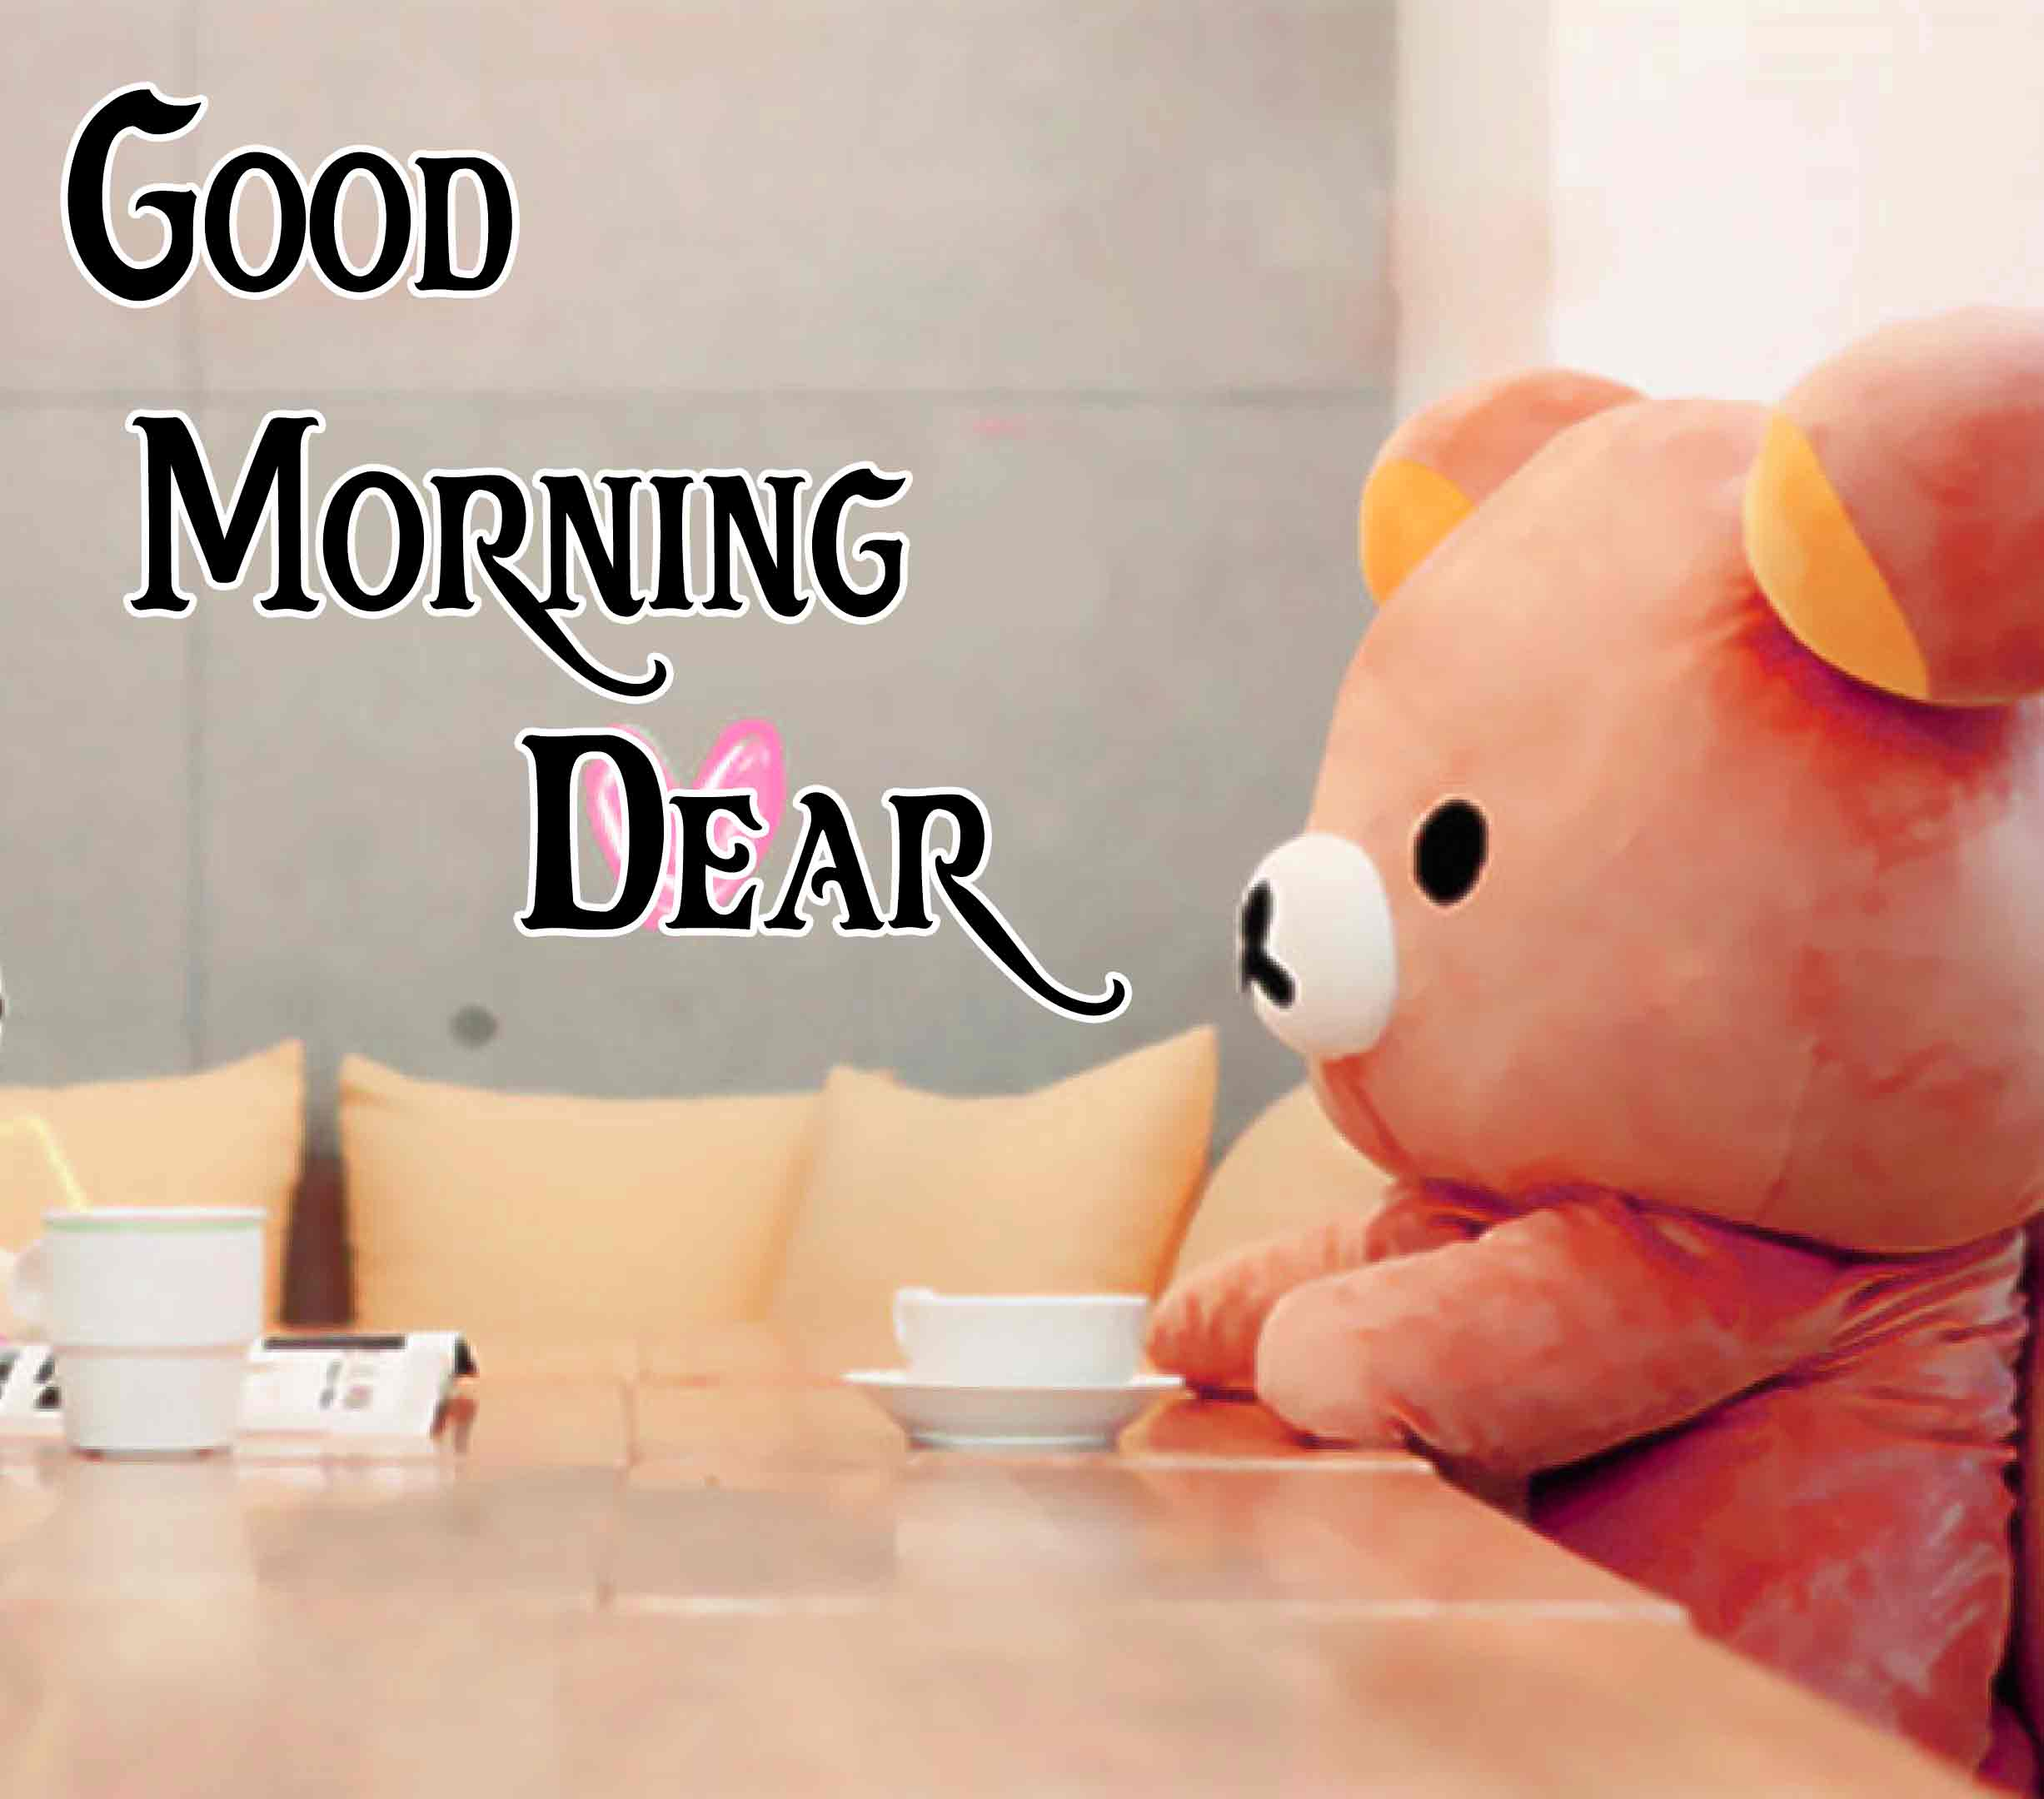 Good Morning 4k HD Images HD Pics Wallpaper Download